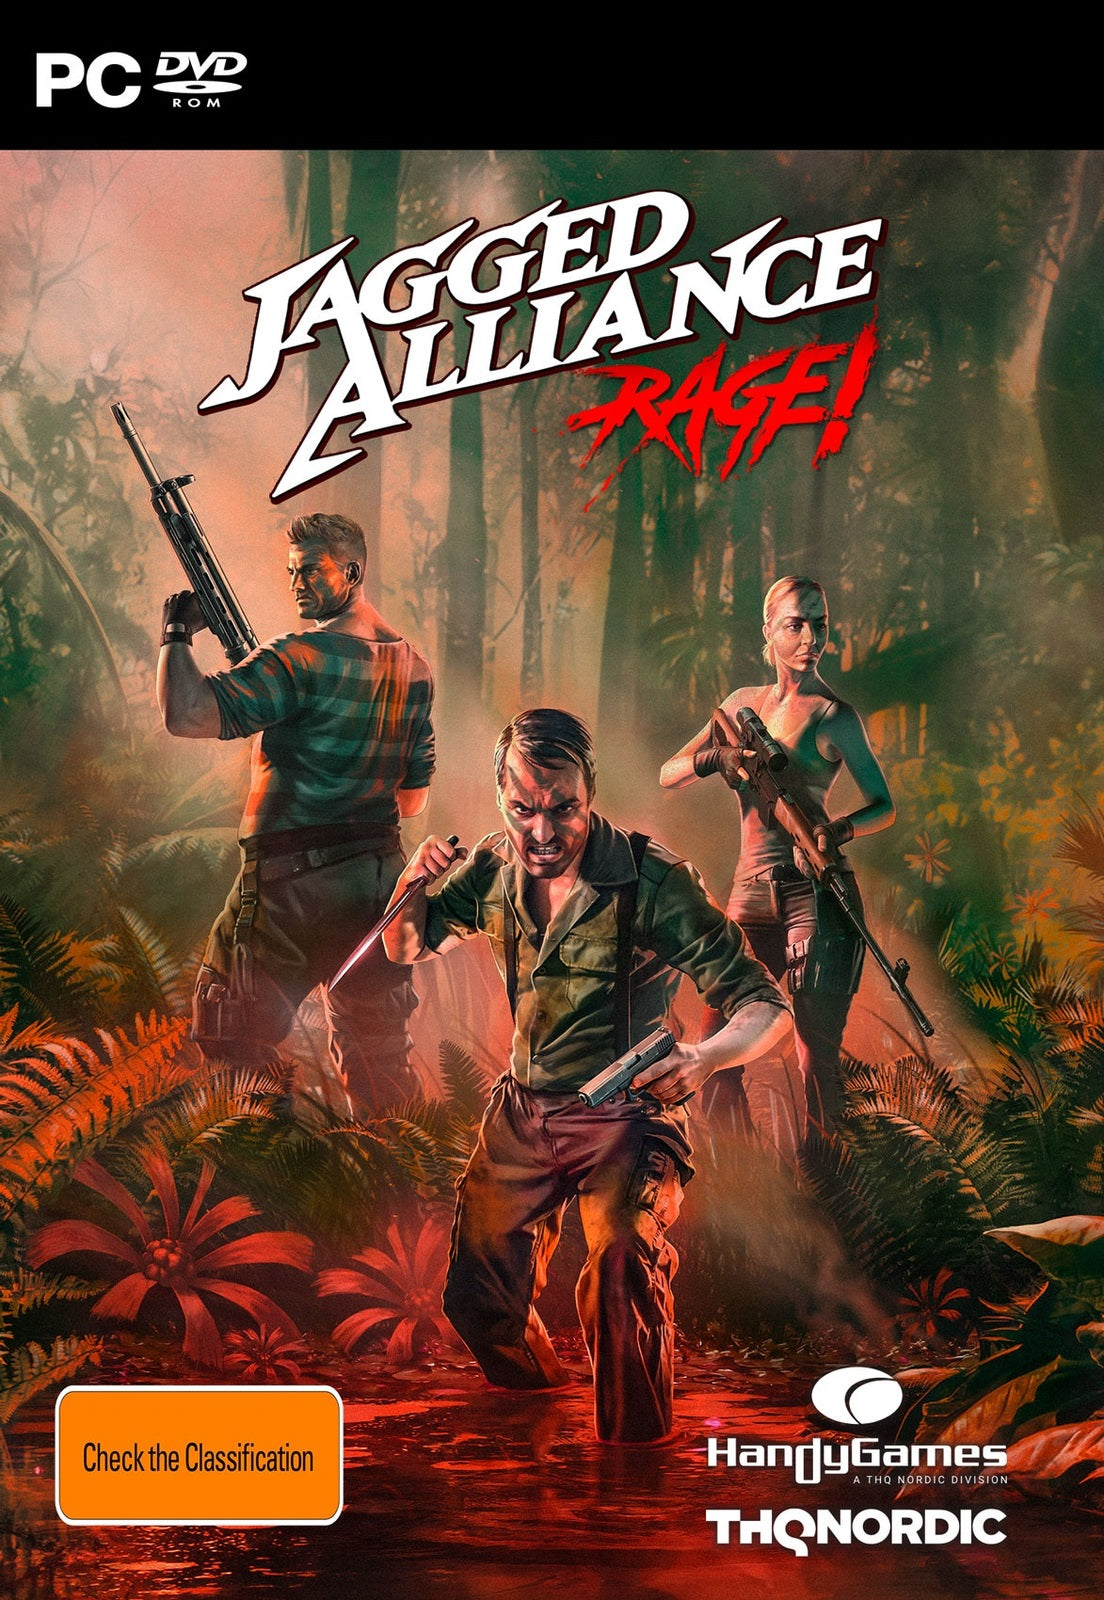 Jagged Alliance: Rage - PC Games